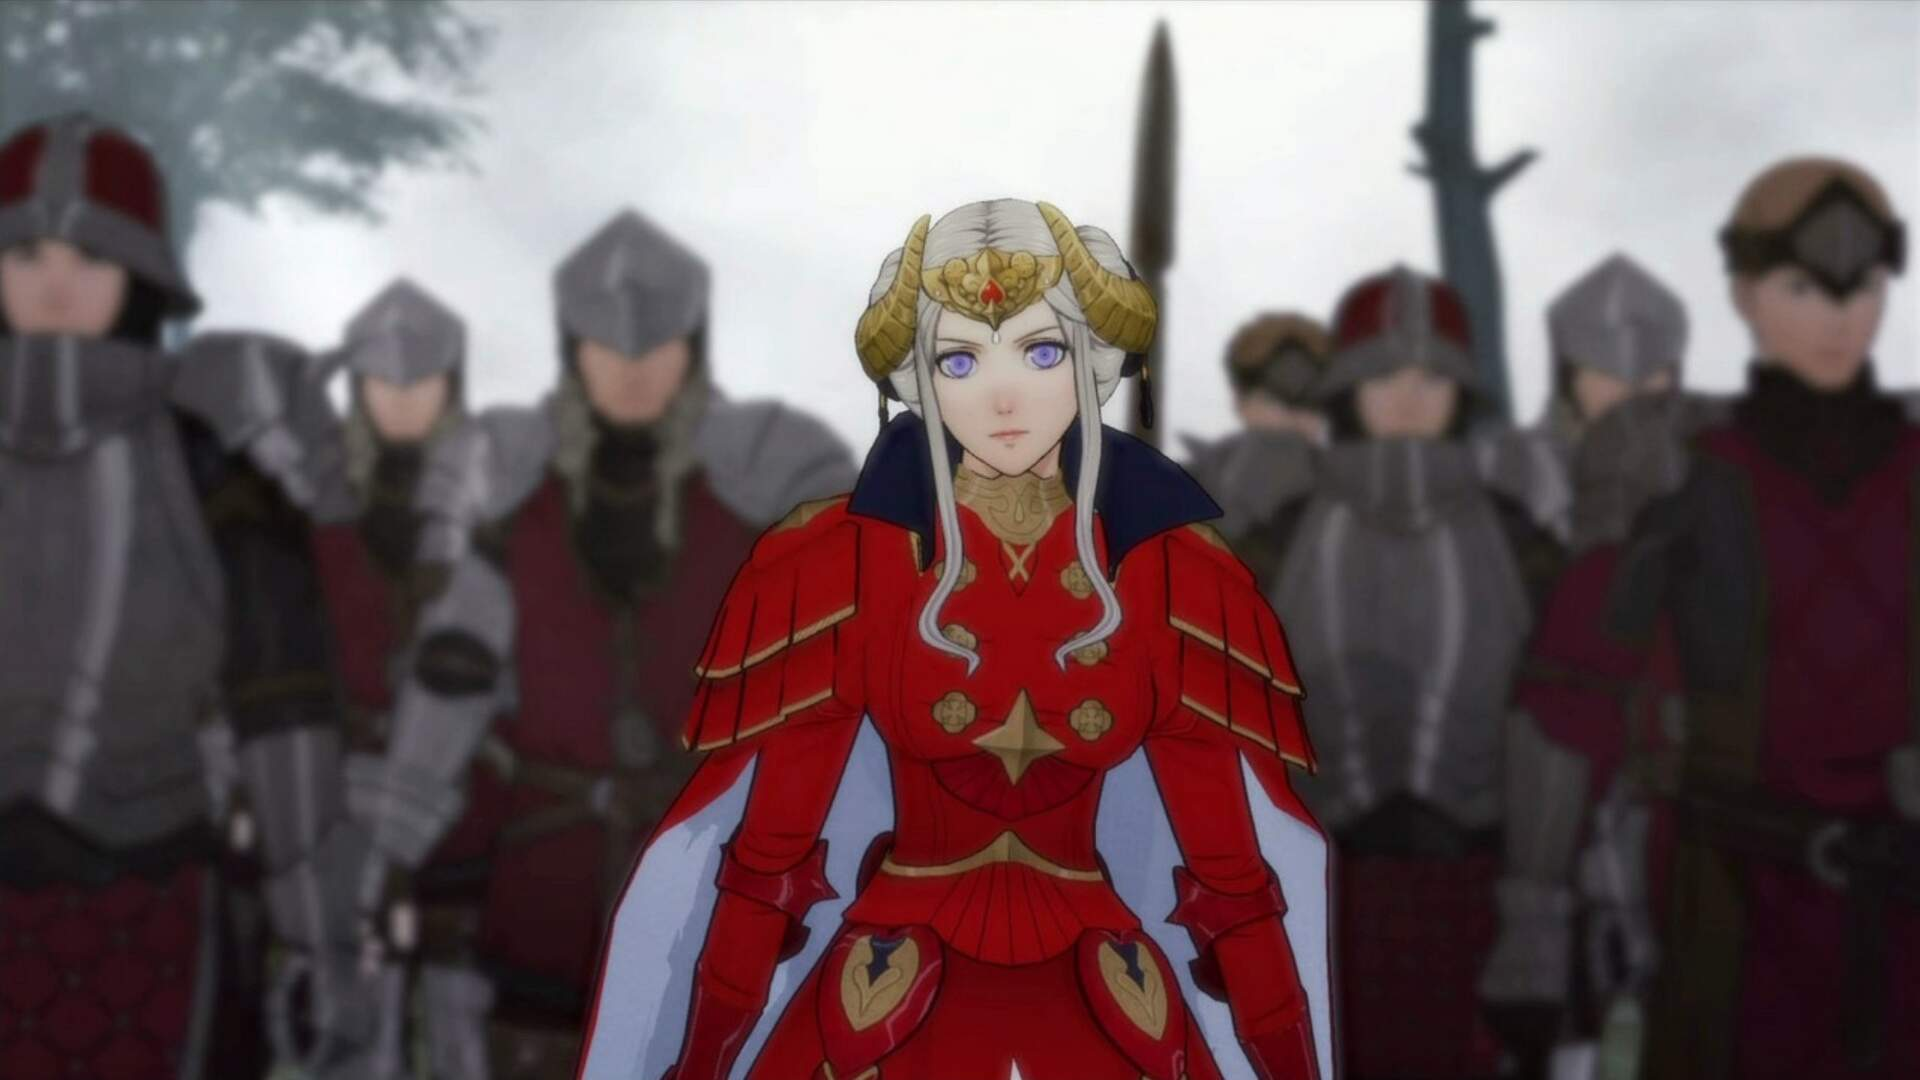 Fire Emblem Celebrates Its 30th Anniversary On a High Note